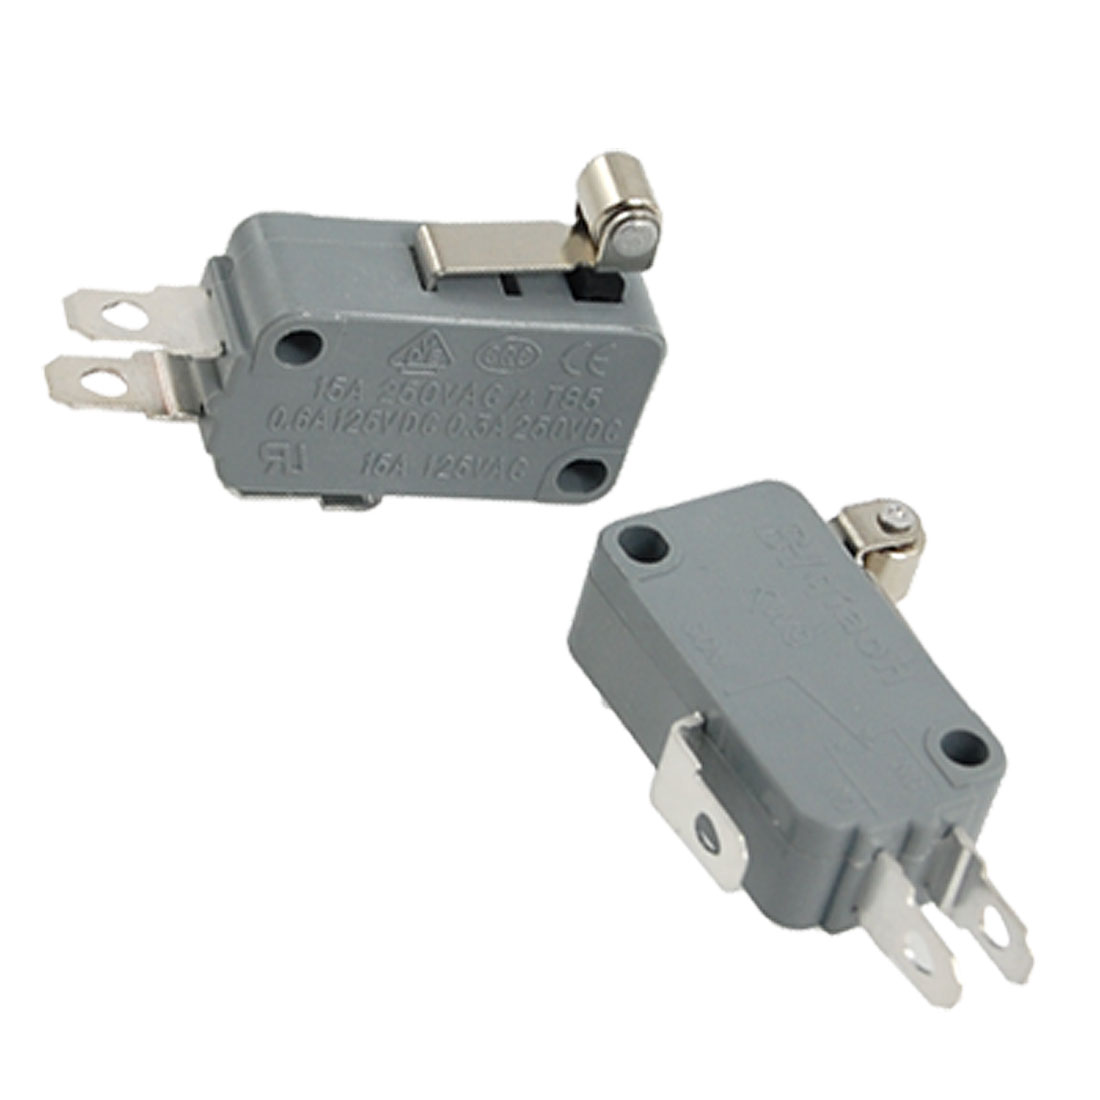 2 Pcs Roller Short Metal Lever Miniature Micro Switch